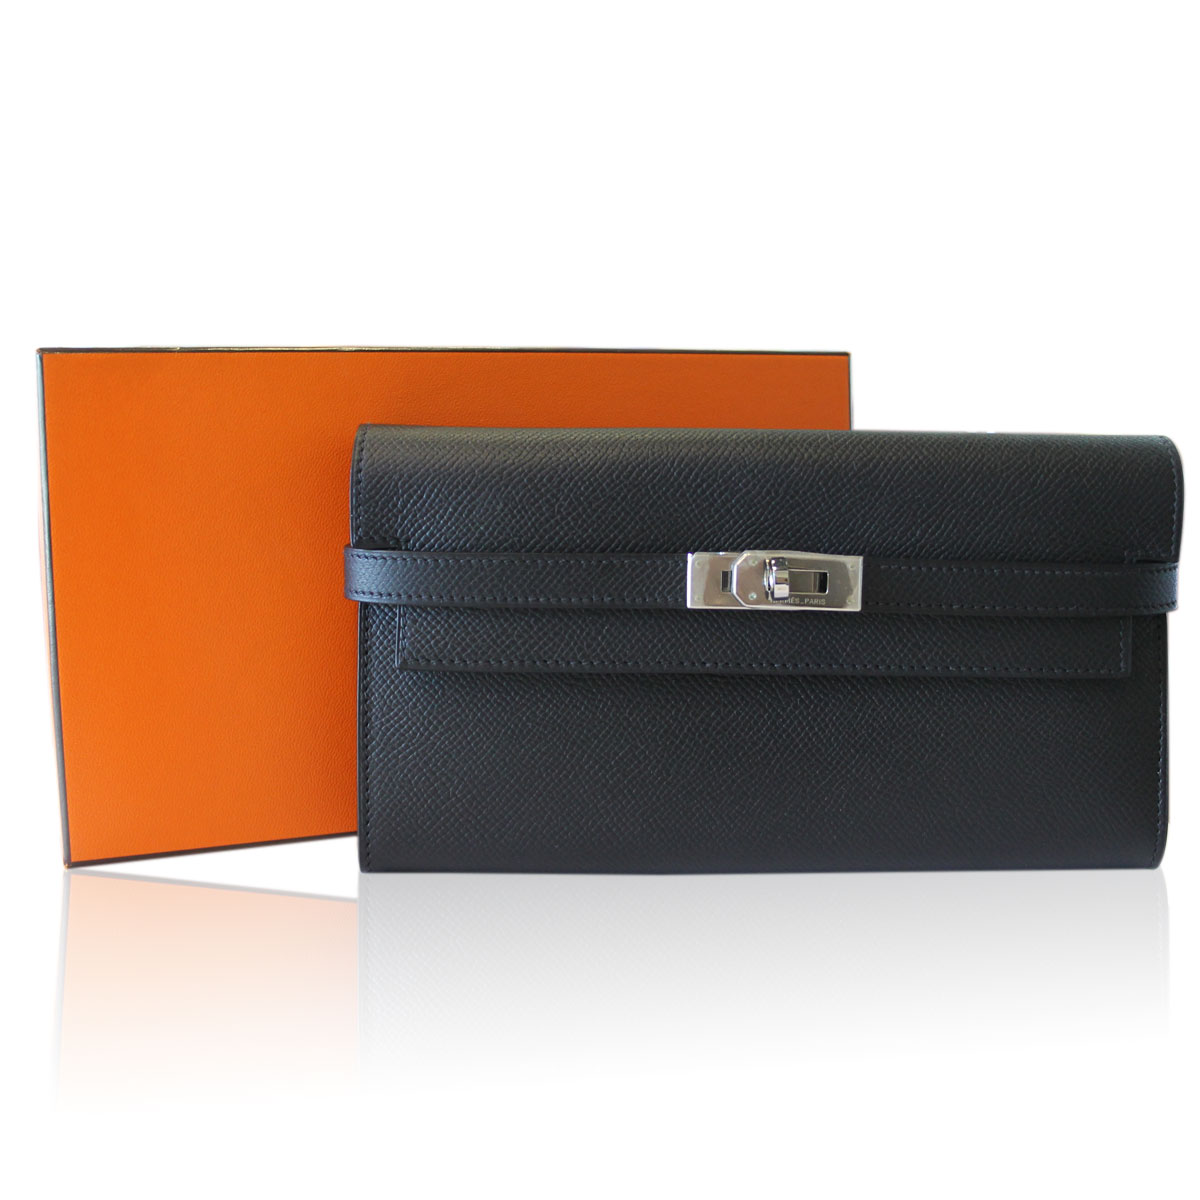 Hermes Epsom Kelly Wallet with Box